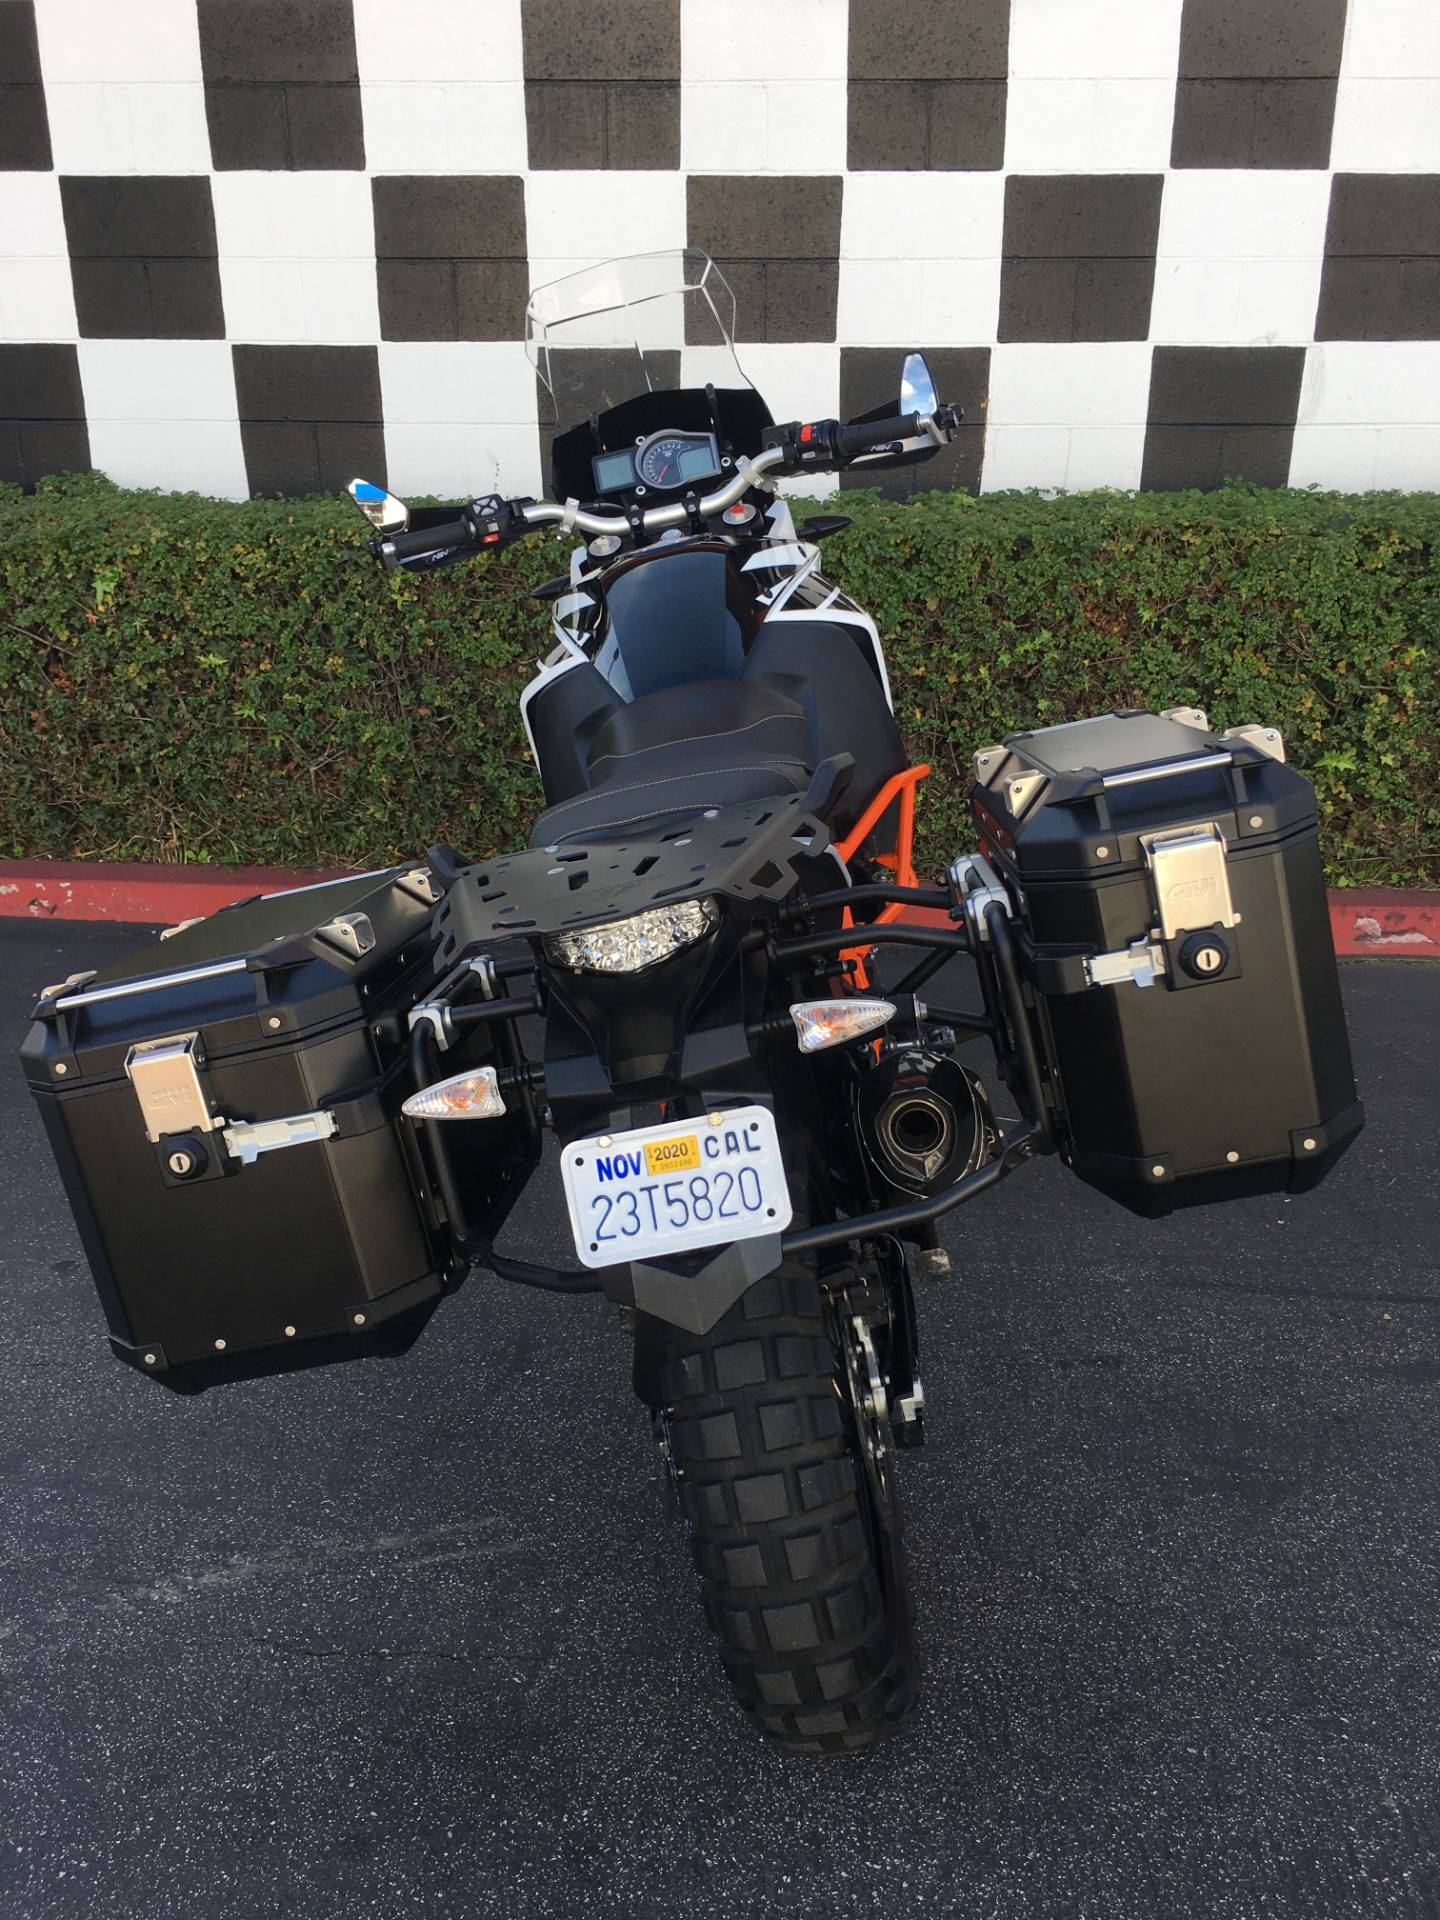 2017 KTM 1090 Adventure R in Costa Mesa, California - Photo 4